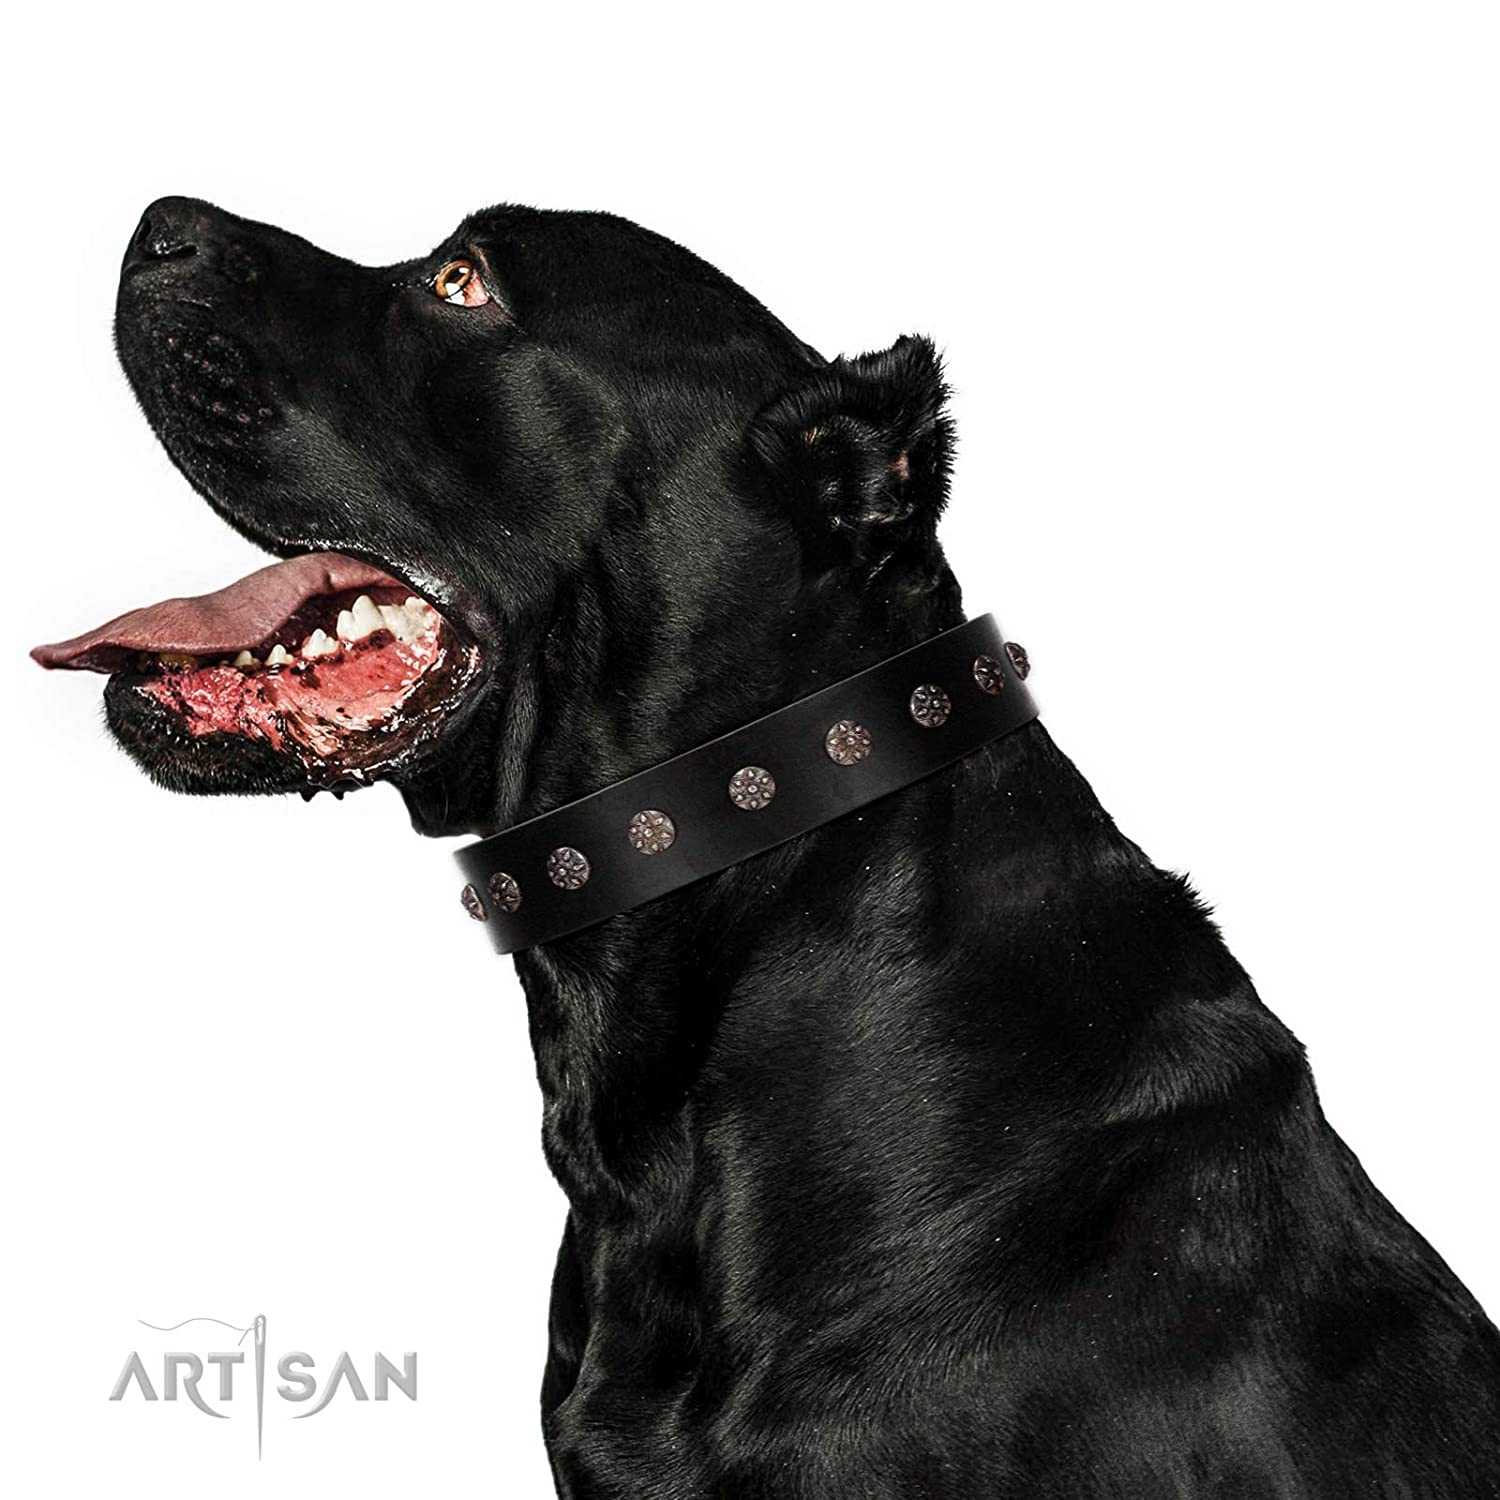 Fits for 36 inch (90cm) dog's neck size FDT Artisan 36 inch Premium Quaulity Black Leather Dog Collar Flower Rhapsody 1 1 2 inch (40 mm) Wide Gift Box Included